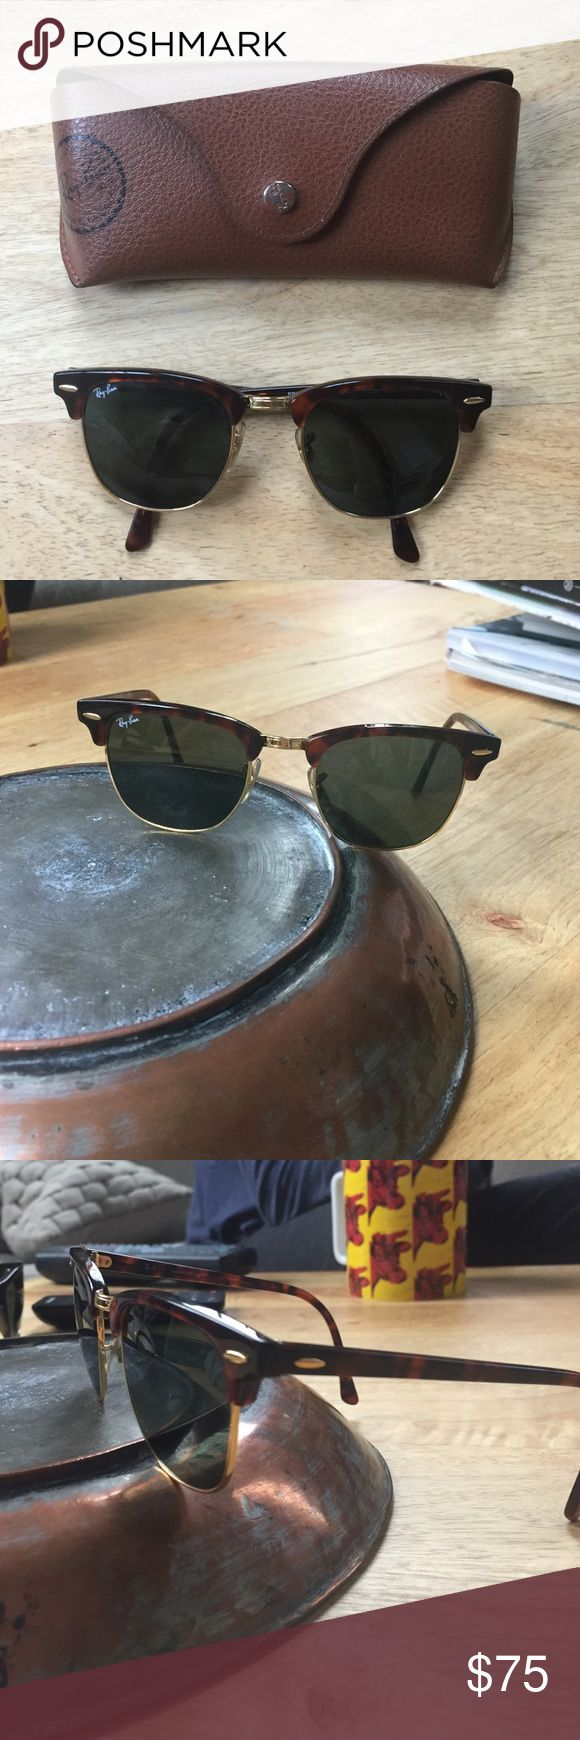 Authentic women's  Ray Ban club master sunglasses Authentic women's ray bans club master style. Tortoise color. In good condition Ray-Ban Accessories Sunglasses